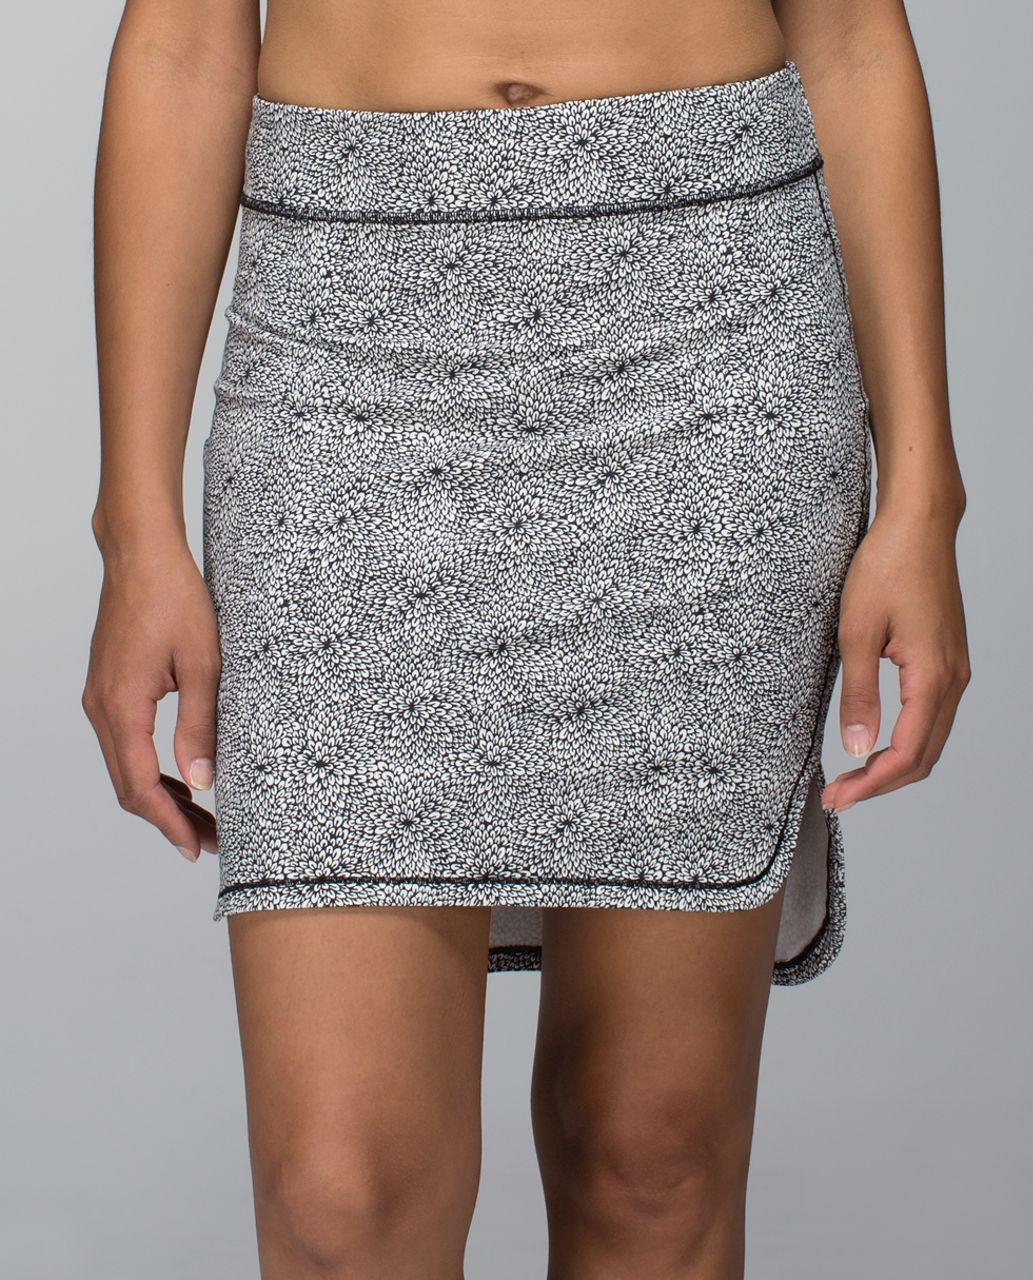 Lululemon City Skirt - Plush Petal Deep Coal Ghost